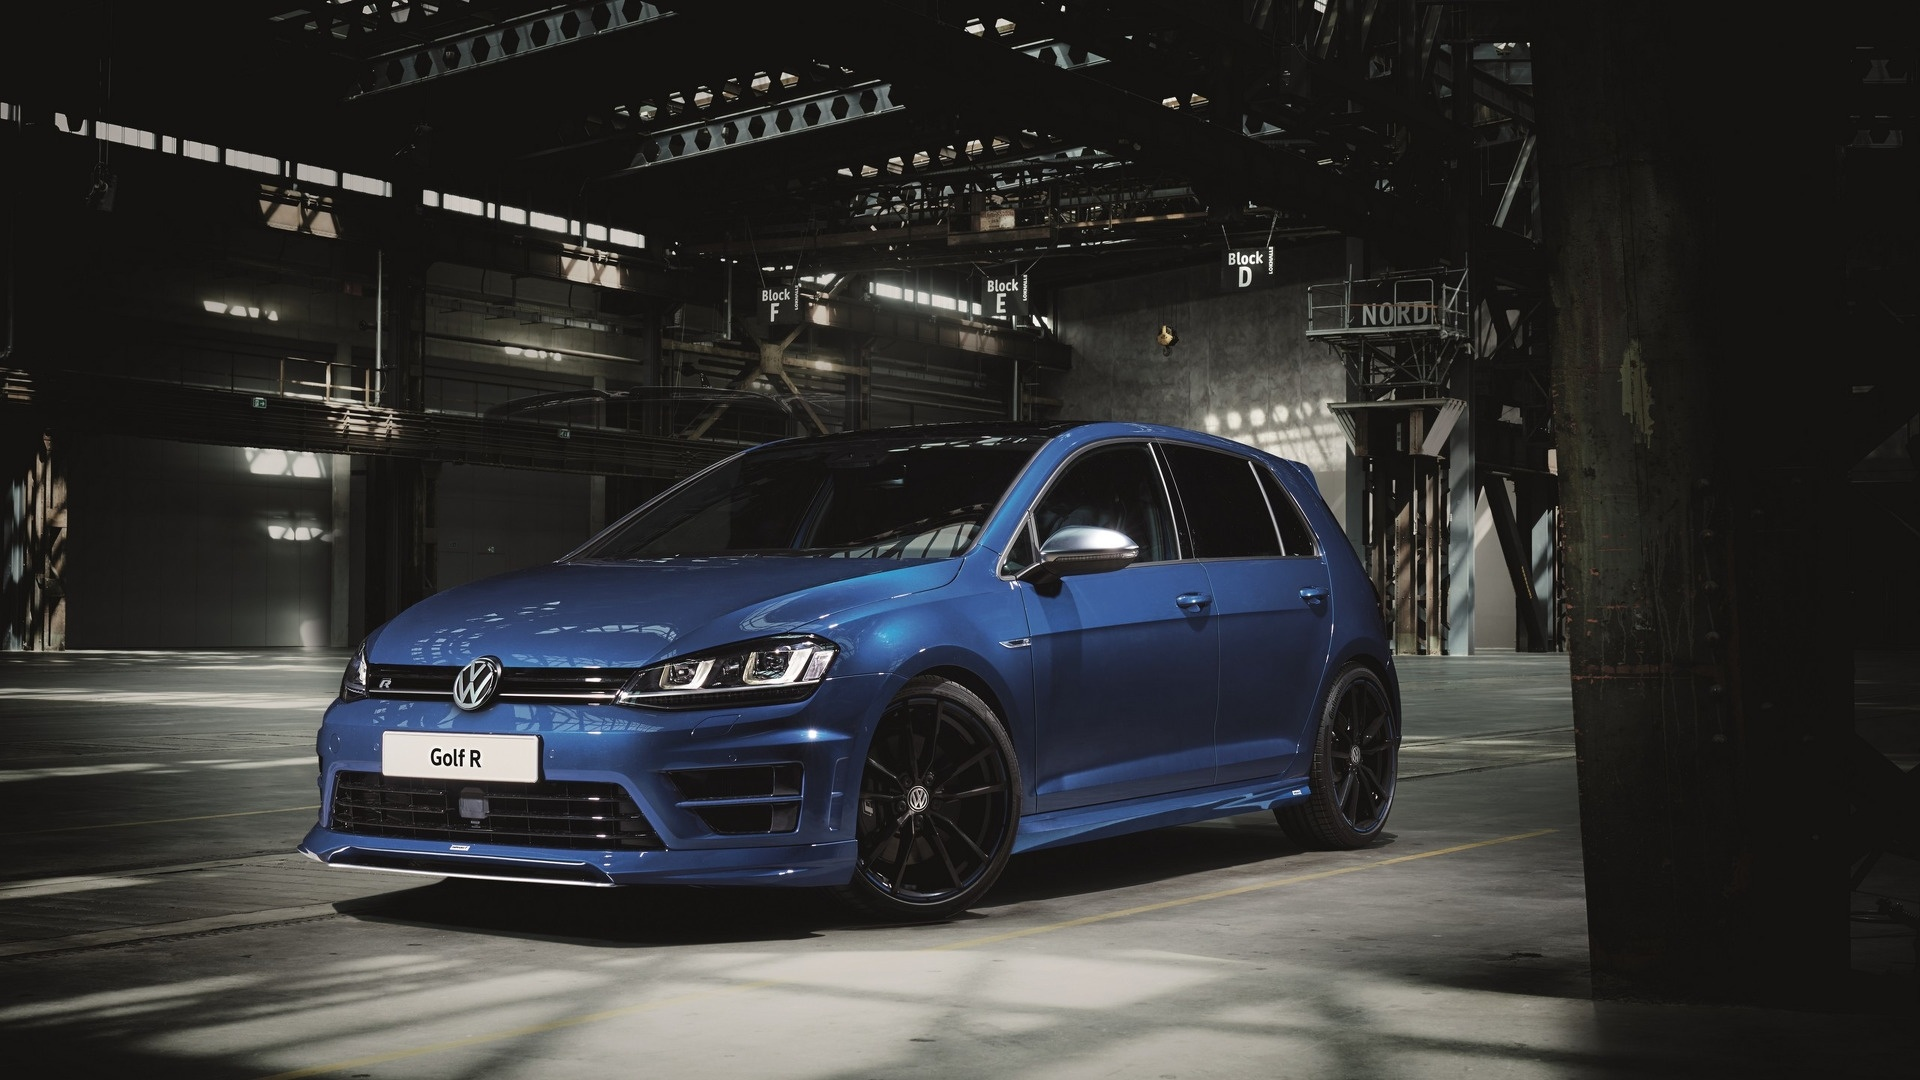 Golf R best picture